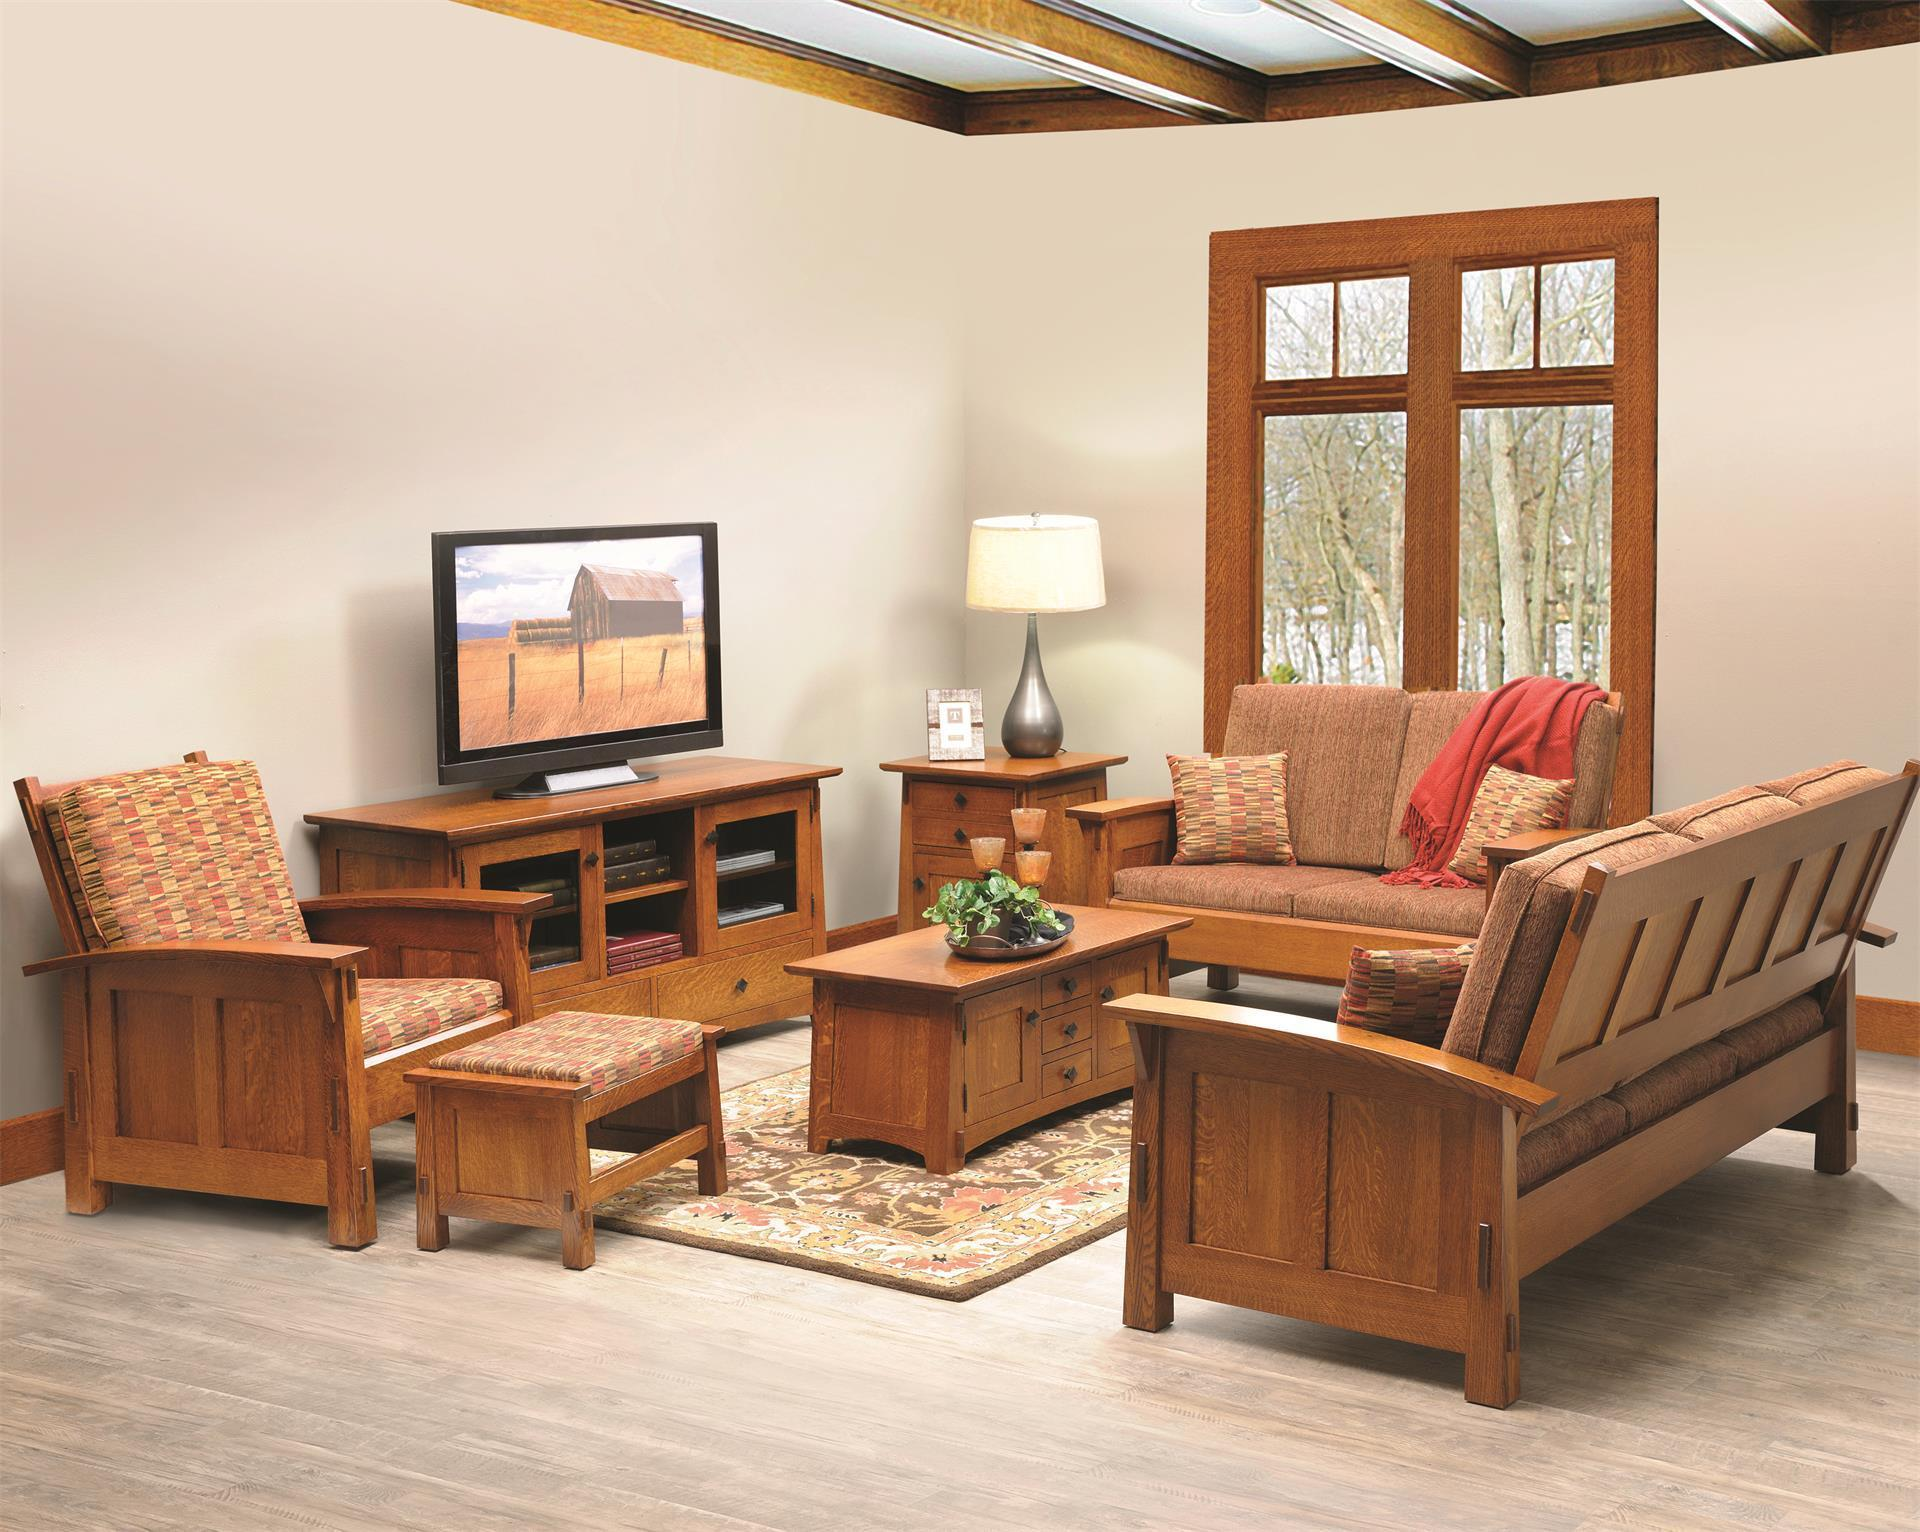 Shop The Look Goshen Shaker Living Room Set